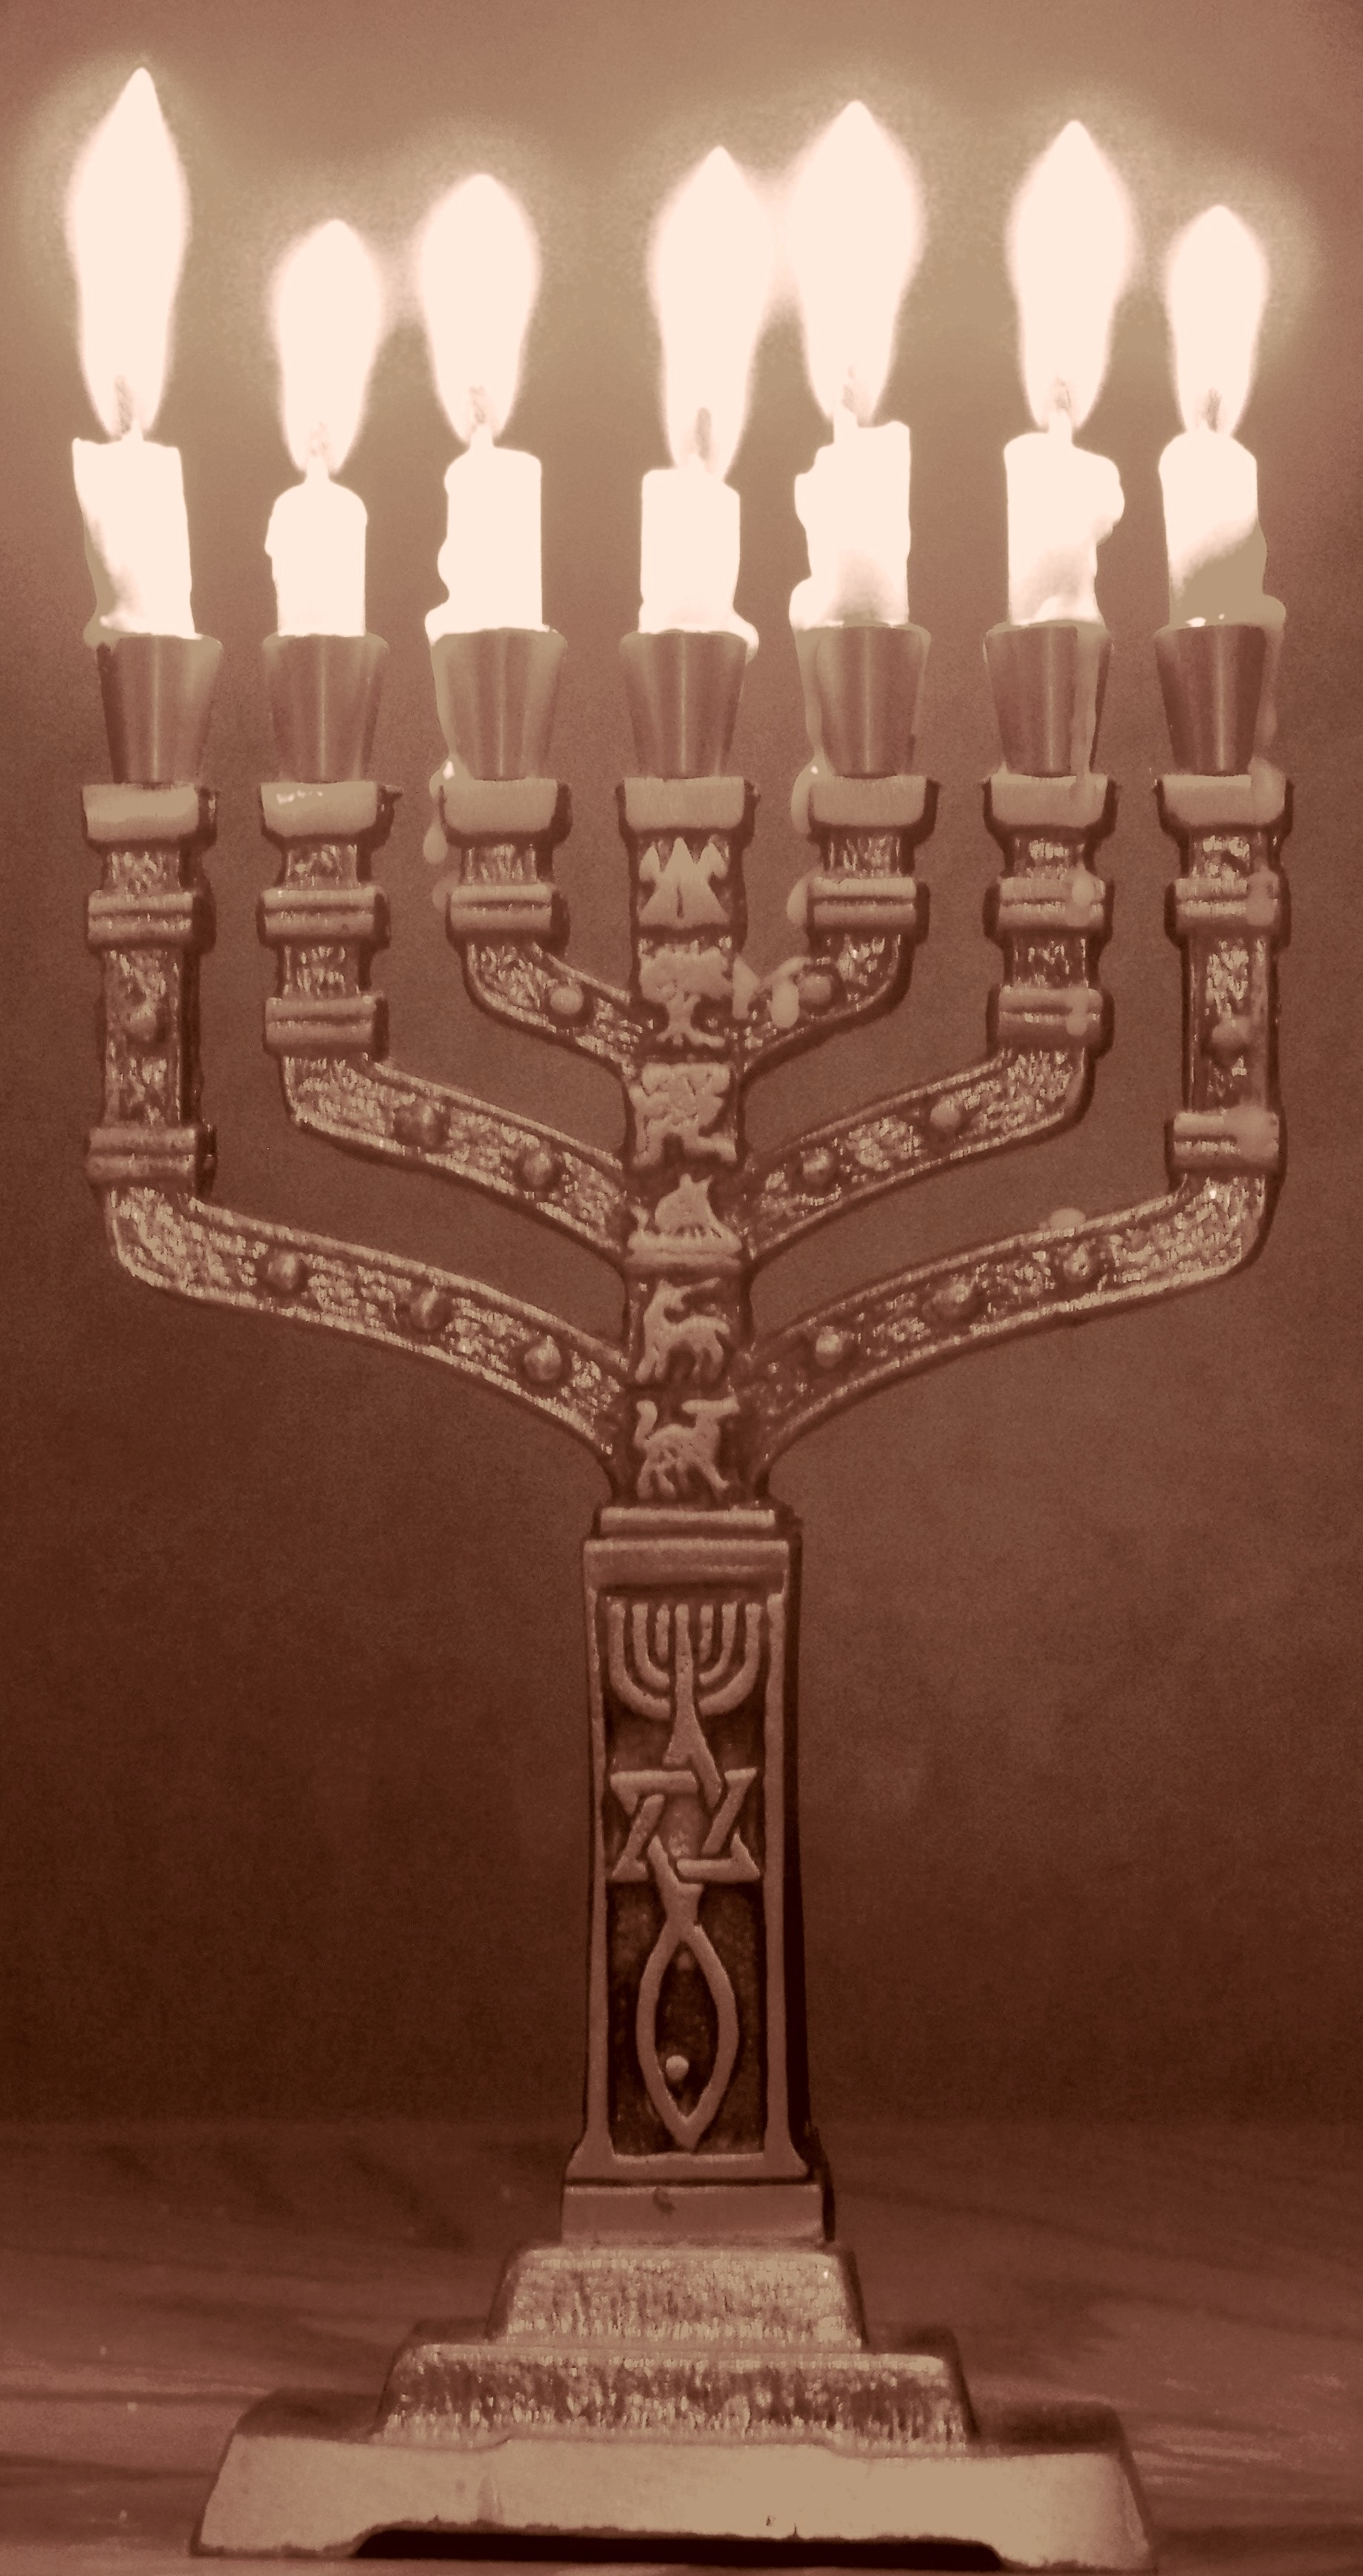 The menorah was the original symbol of Christianity